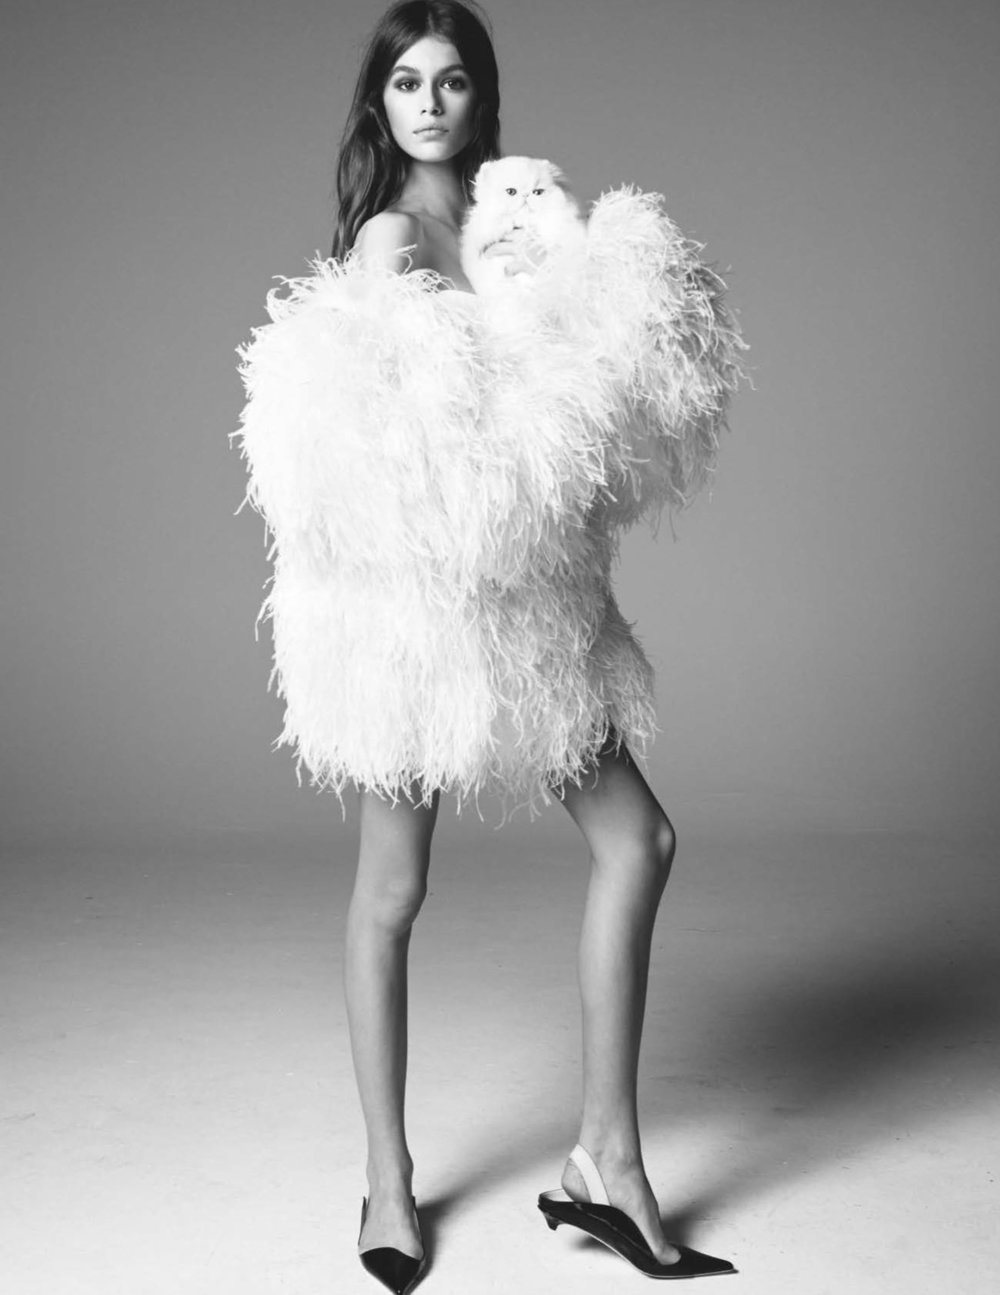 Kaia-Gerber-The-Swan-Steven-Meisel-for-Vogue-UK-March-2018-12.jpg